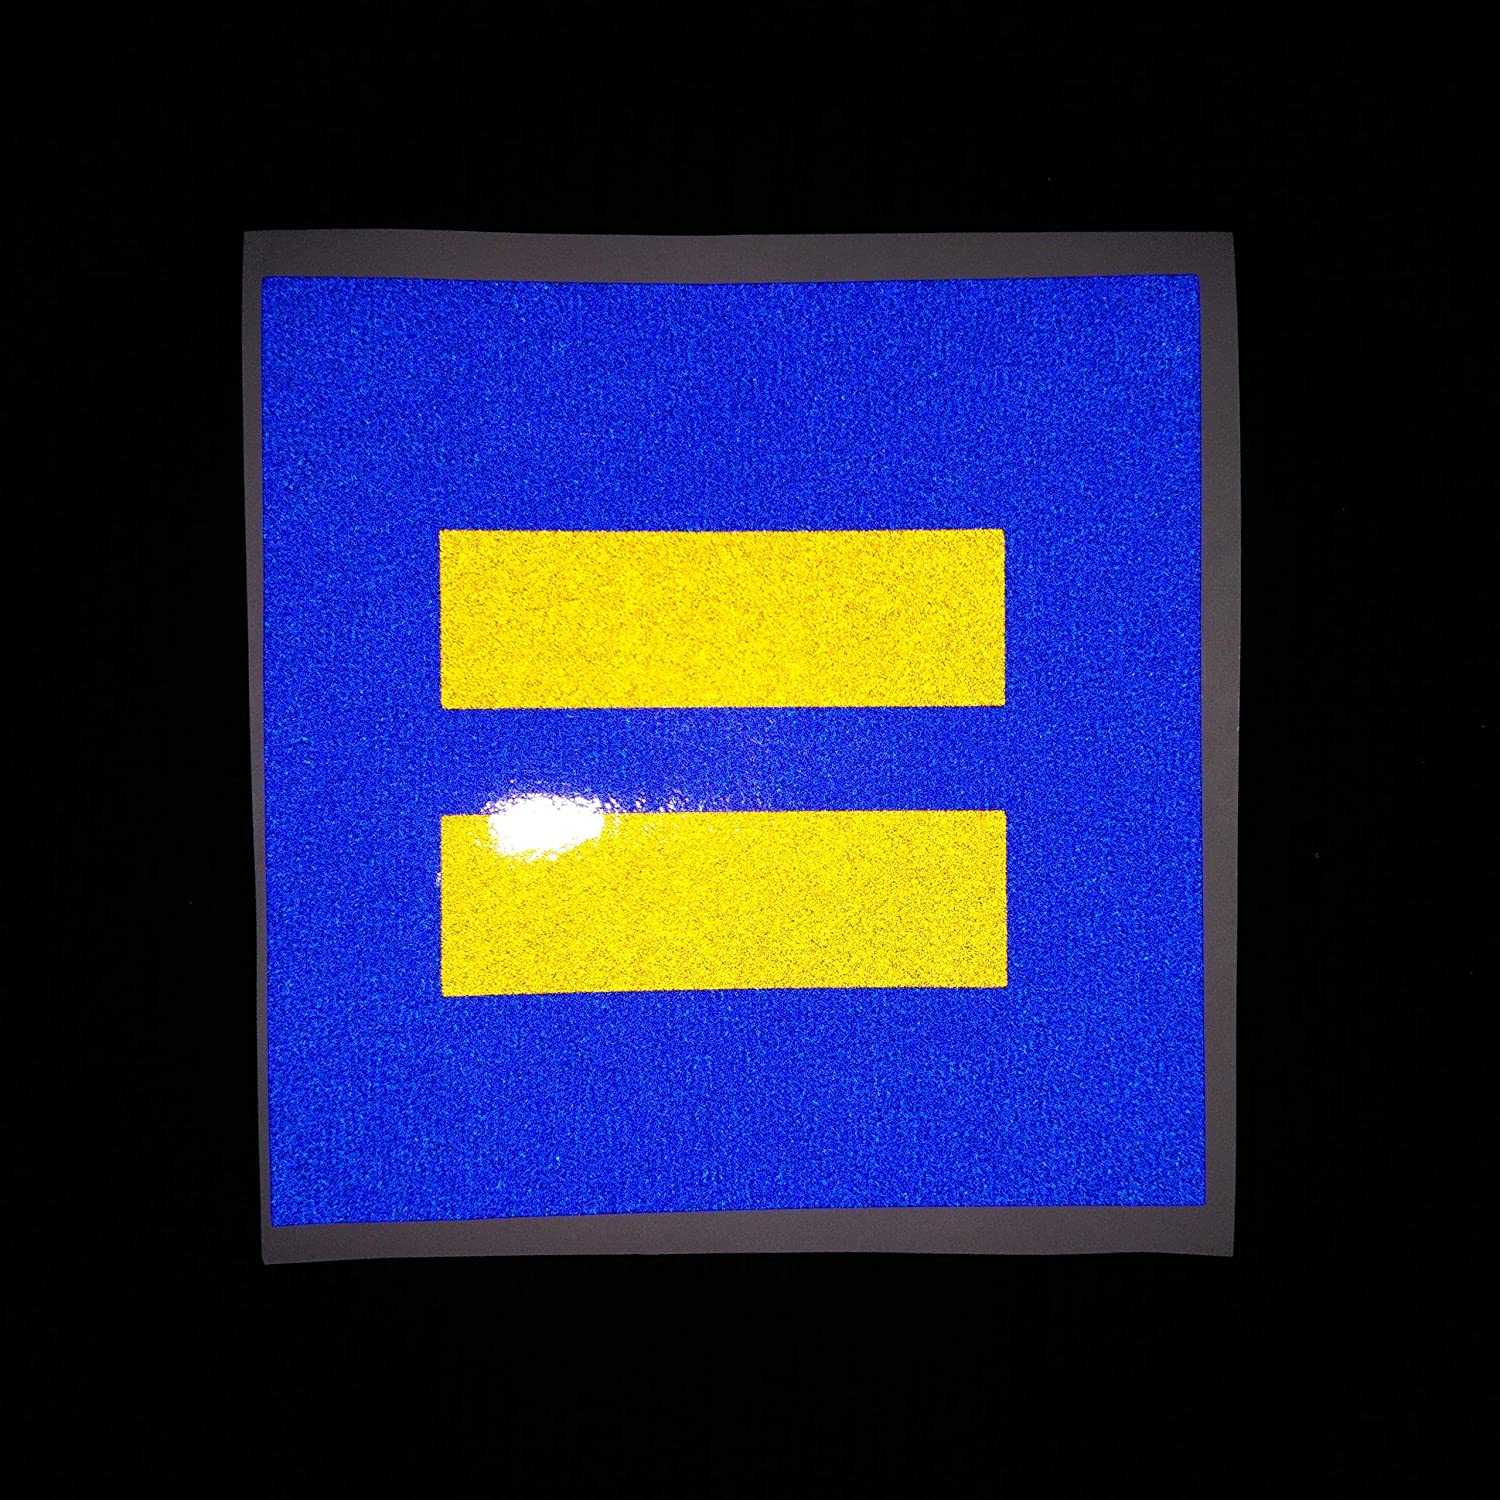 2x Equality 4 Support Love LGBT Pride Marriage Equal Blue Yellow Reflective Decal Decals Vinyl Sticker Safety Night Rear for Motorcycle Bike Bicycle Car Helmet Trunk Tailgate Laptop Notebook Window